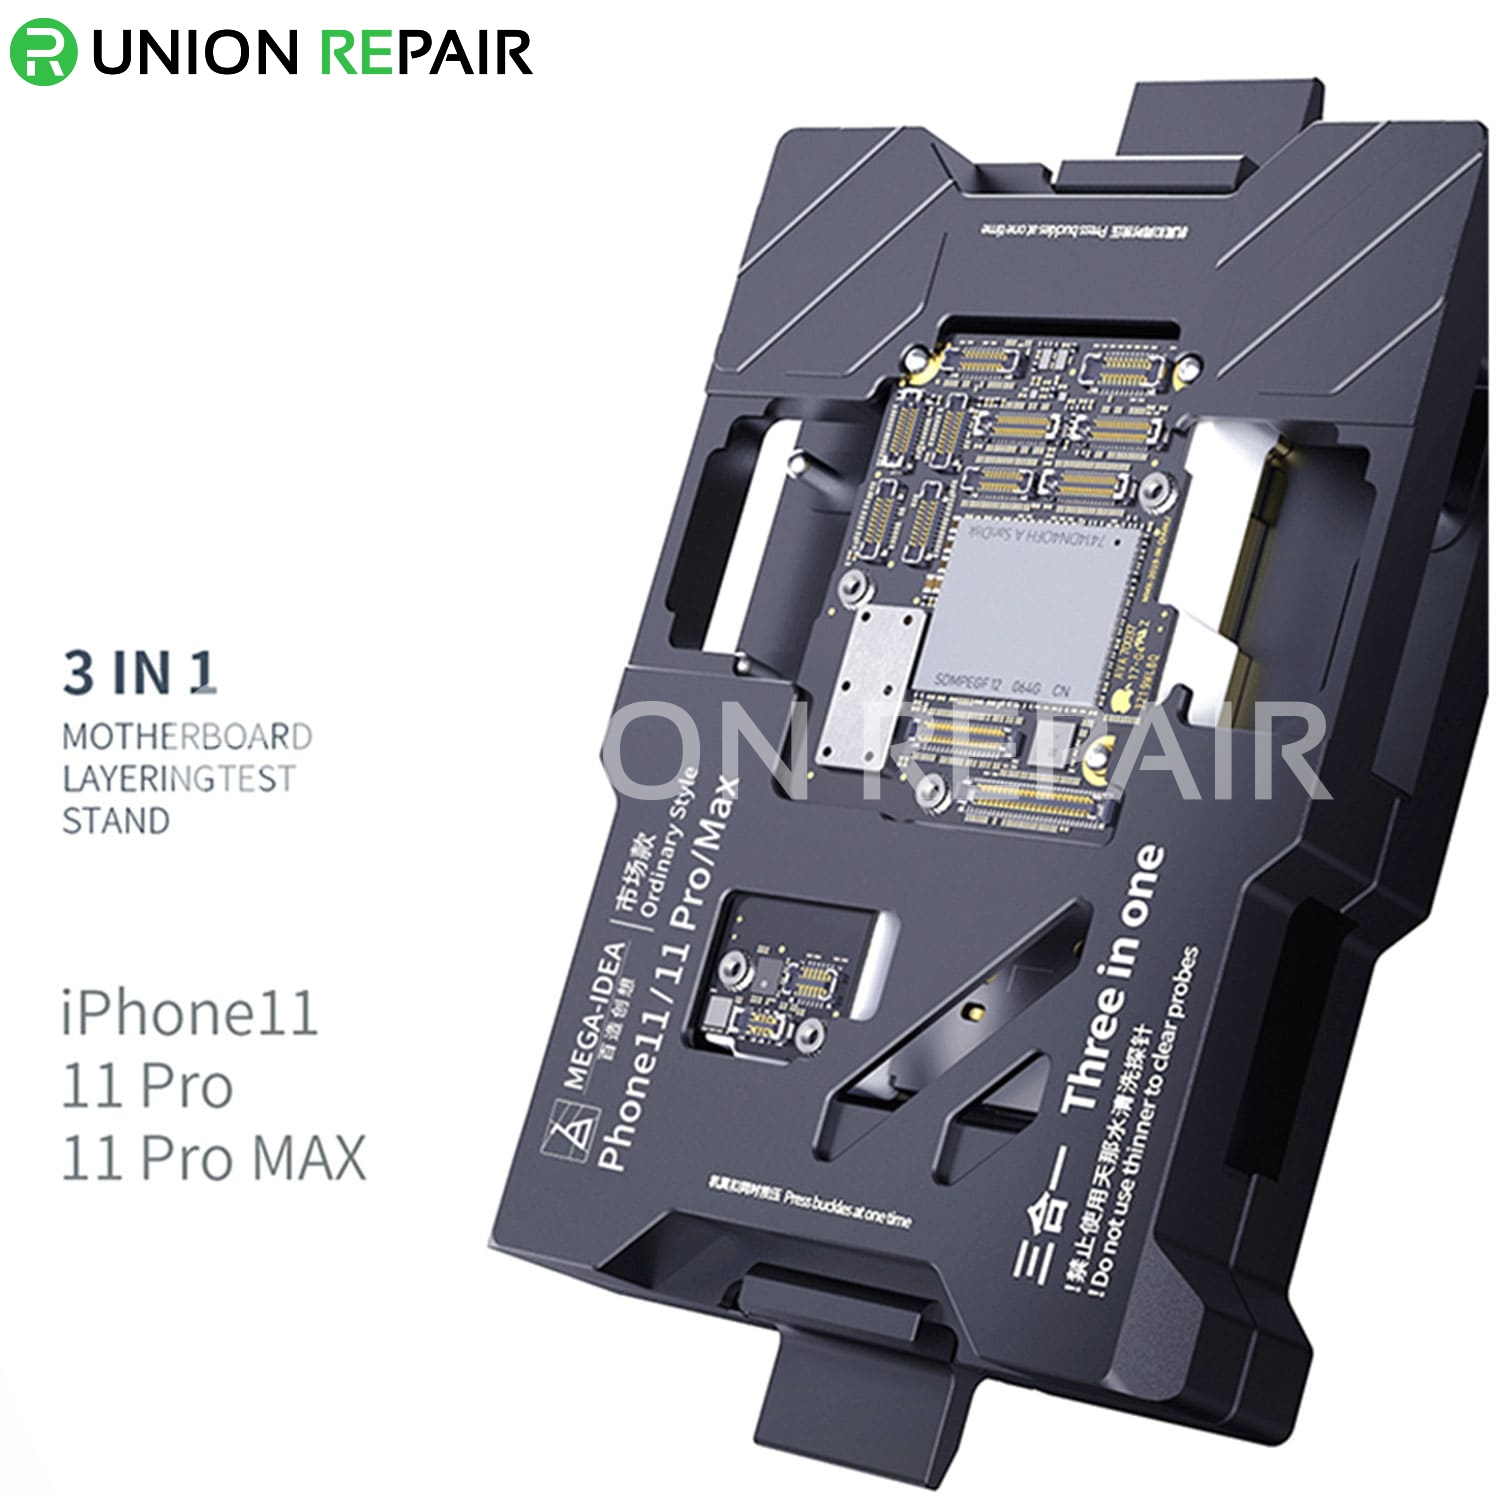 MEGA-IDEA 3in1 Logic Board Function Test Fixture for iPhone 11/11Pro/11ProMax